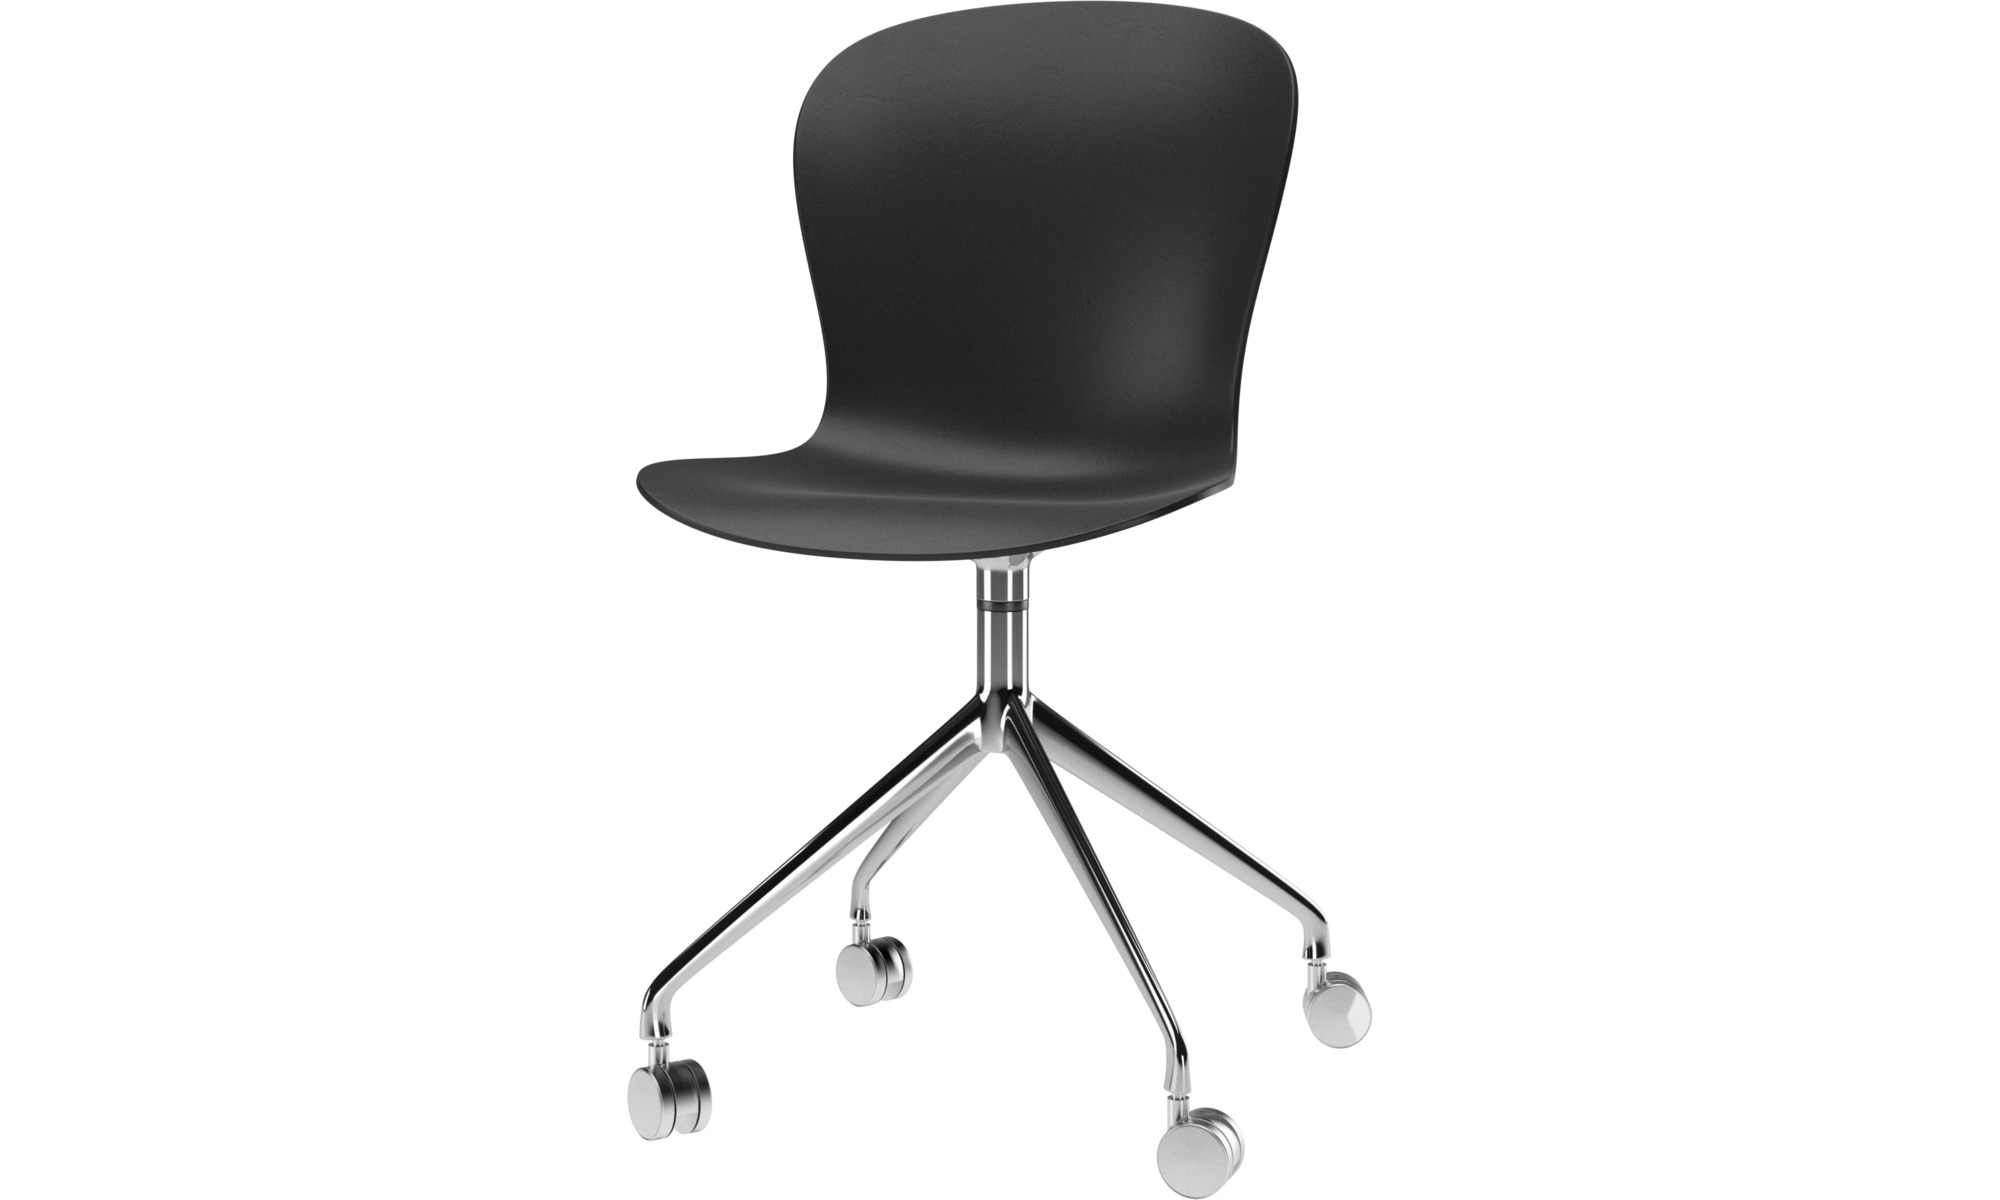 Home office chairs - Adelaide chair with swivel function and wheels - Black - Metal